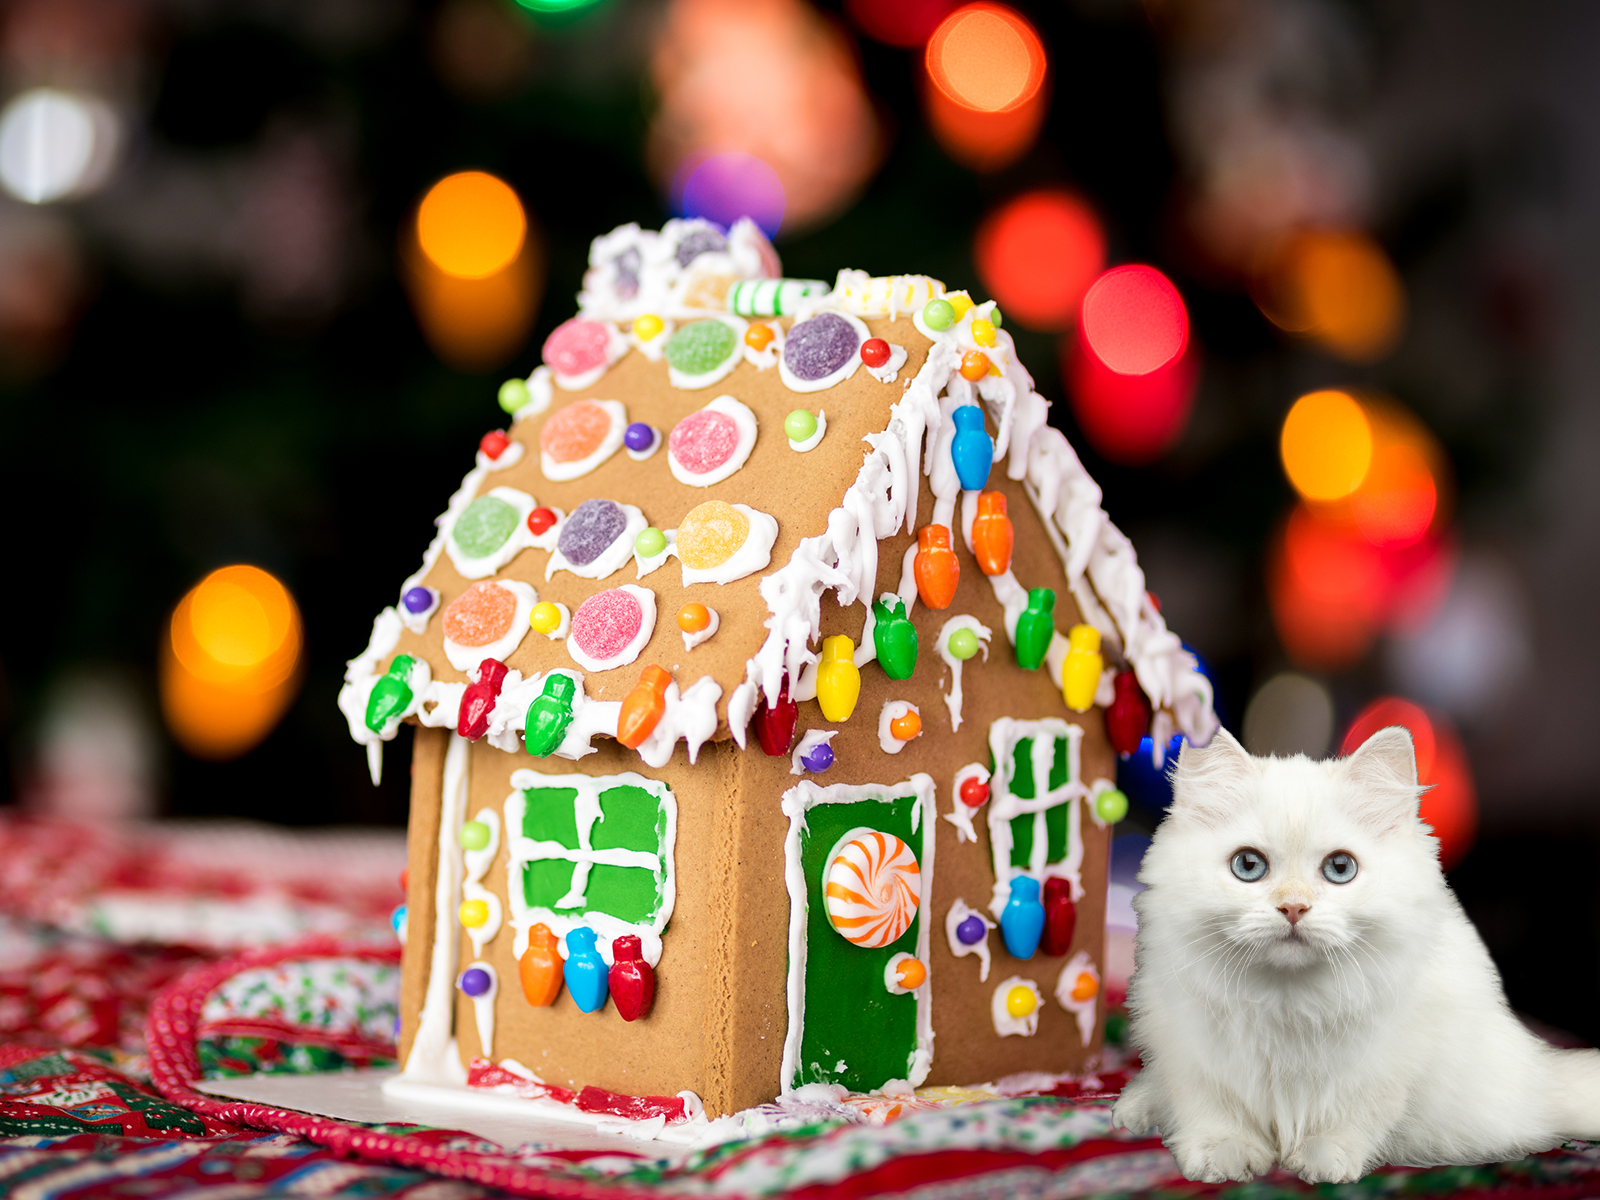 Christmas lights and a Gingerbread house